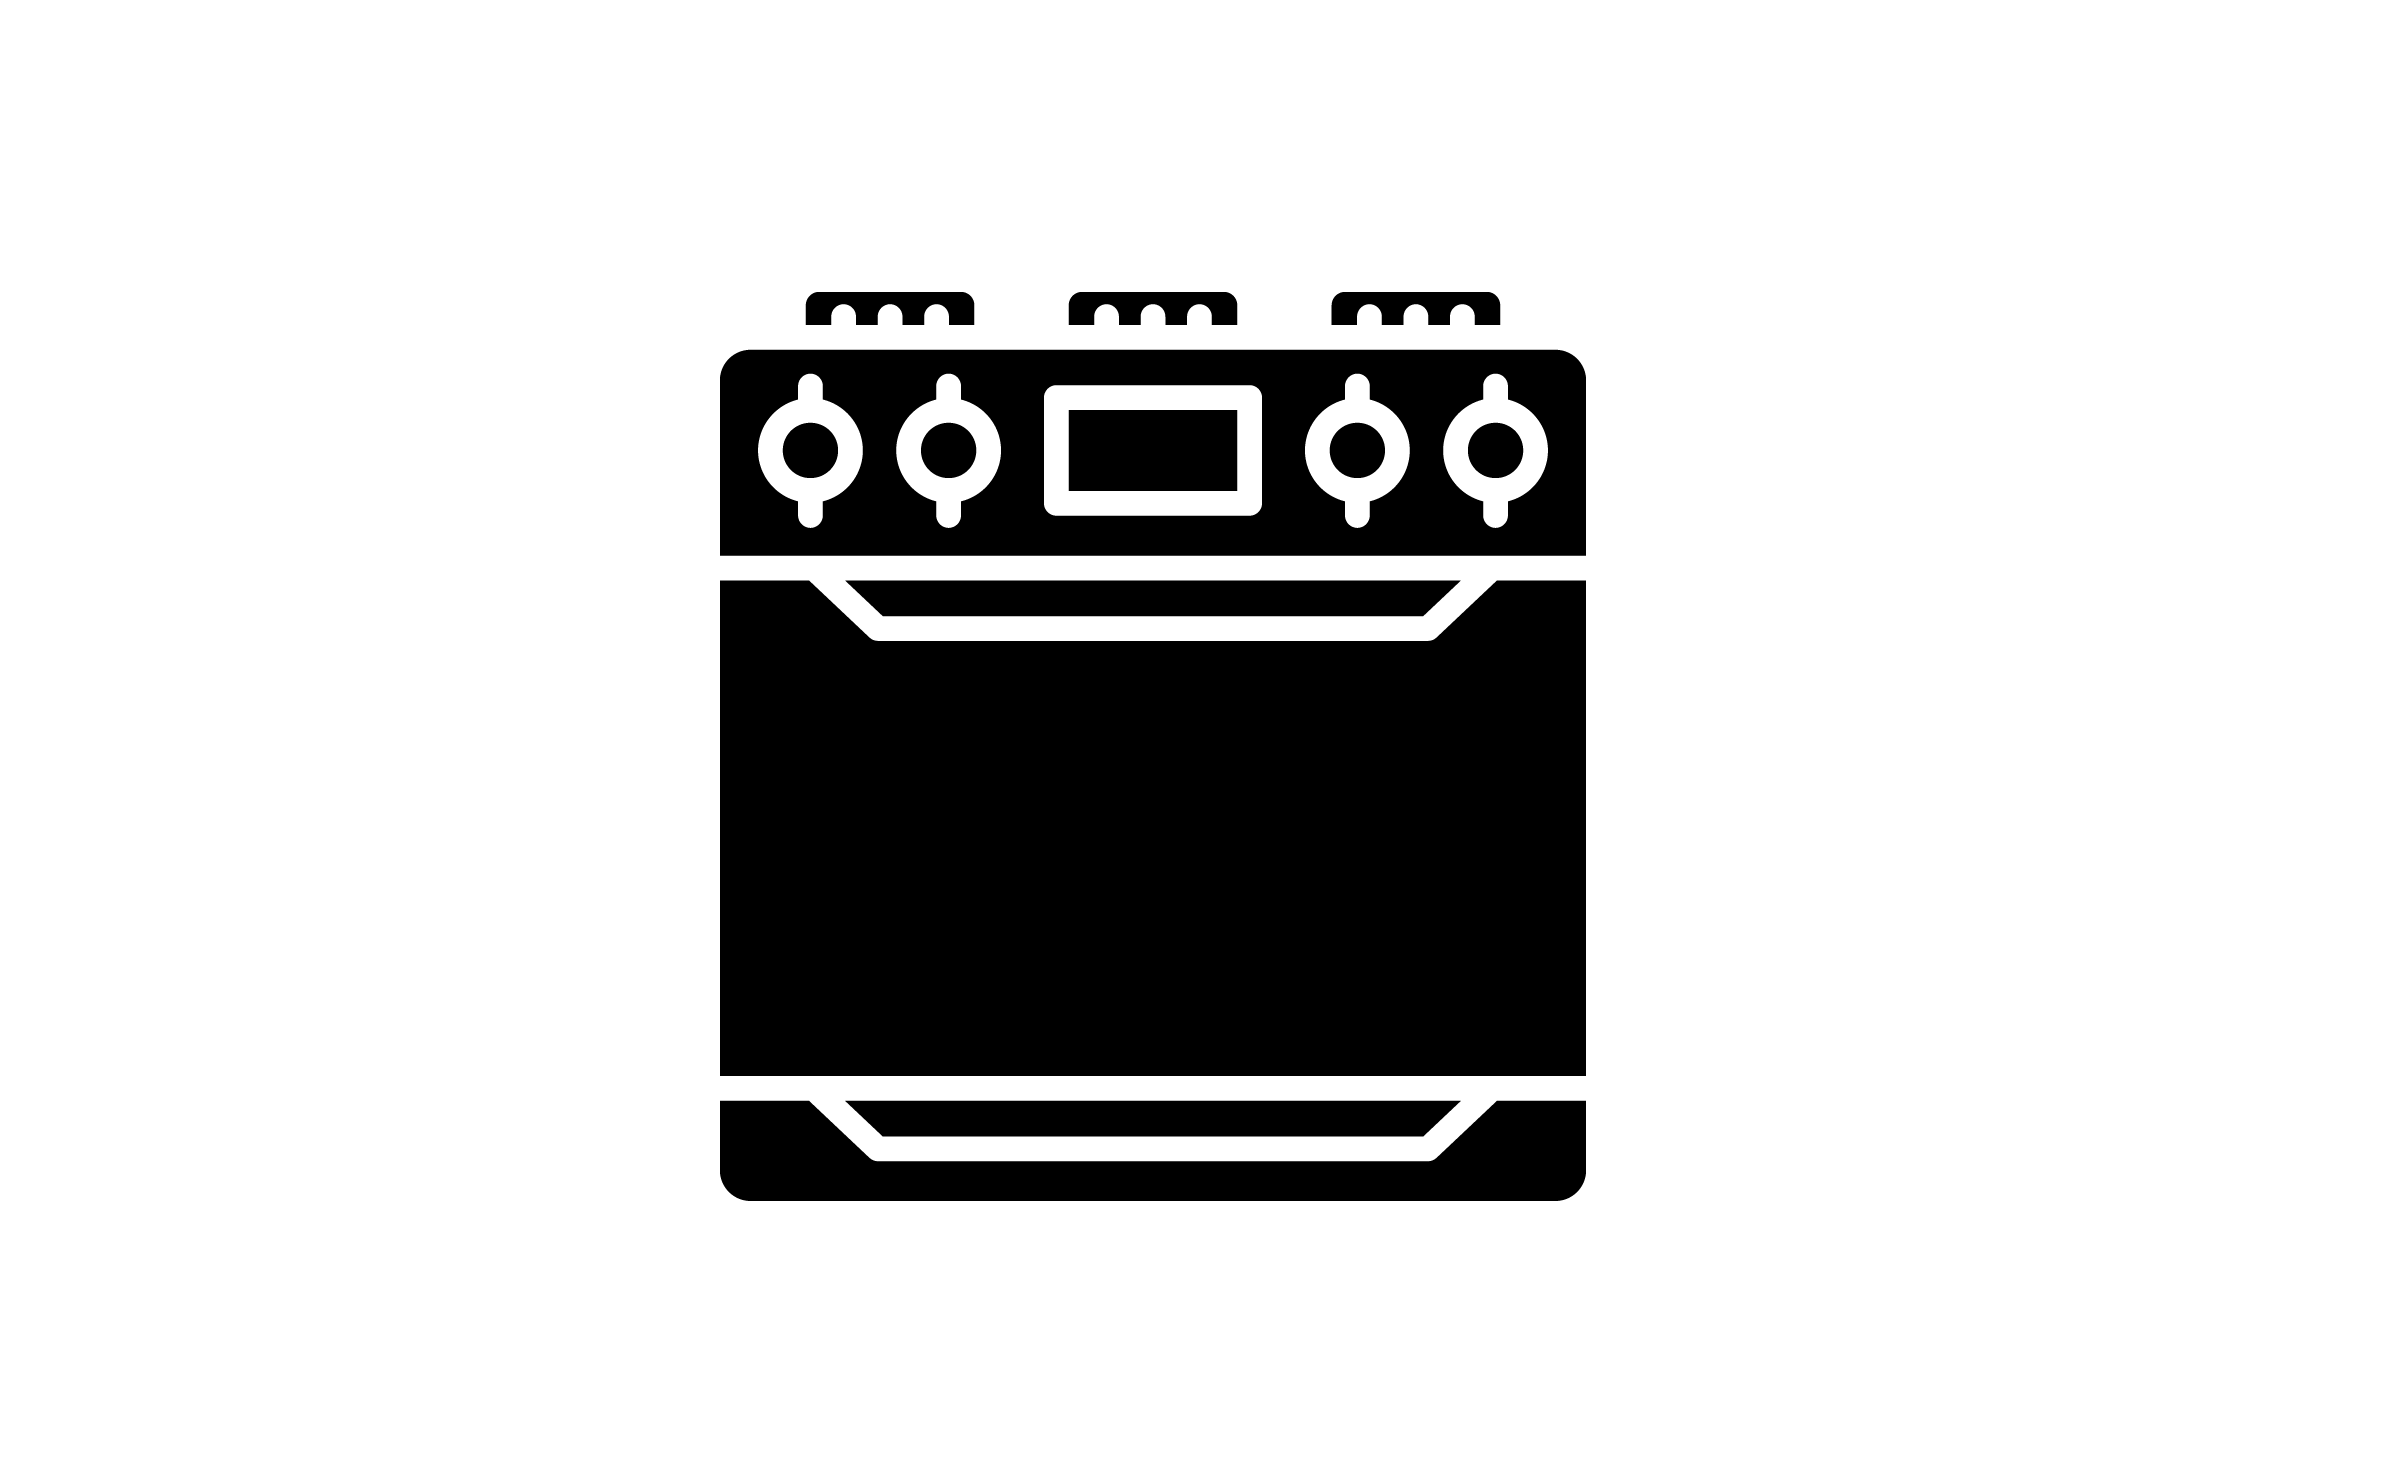 Download Free Stove Icon Graphic By Back1design1 Creative Fabrica for Cricut Explore, Silhouette and other cutting machines.